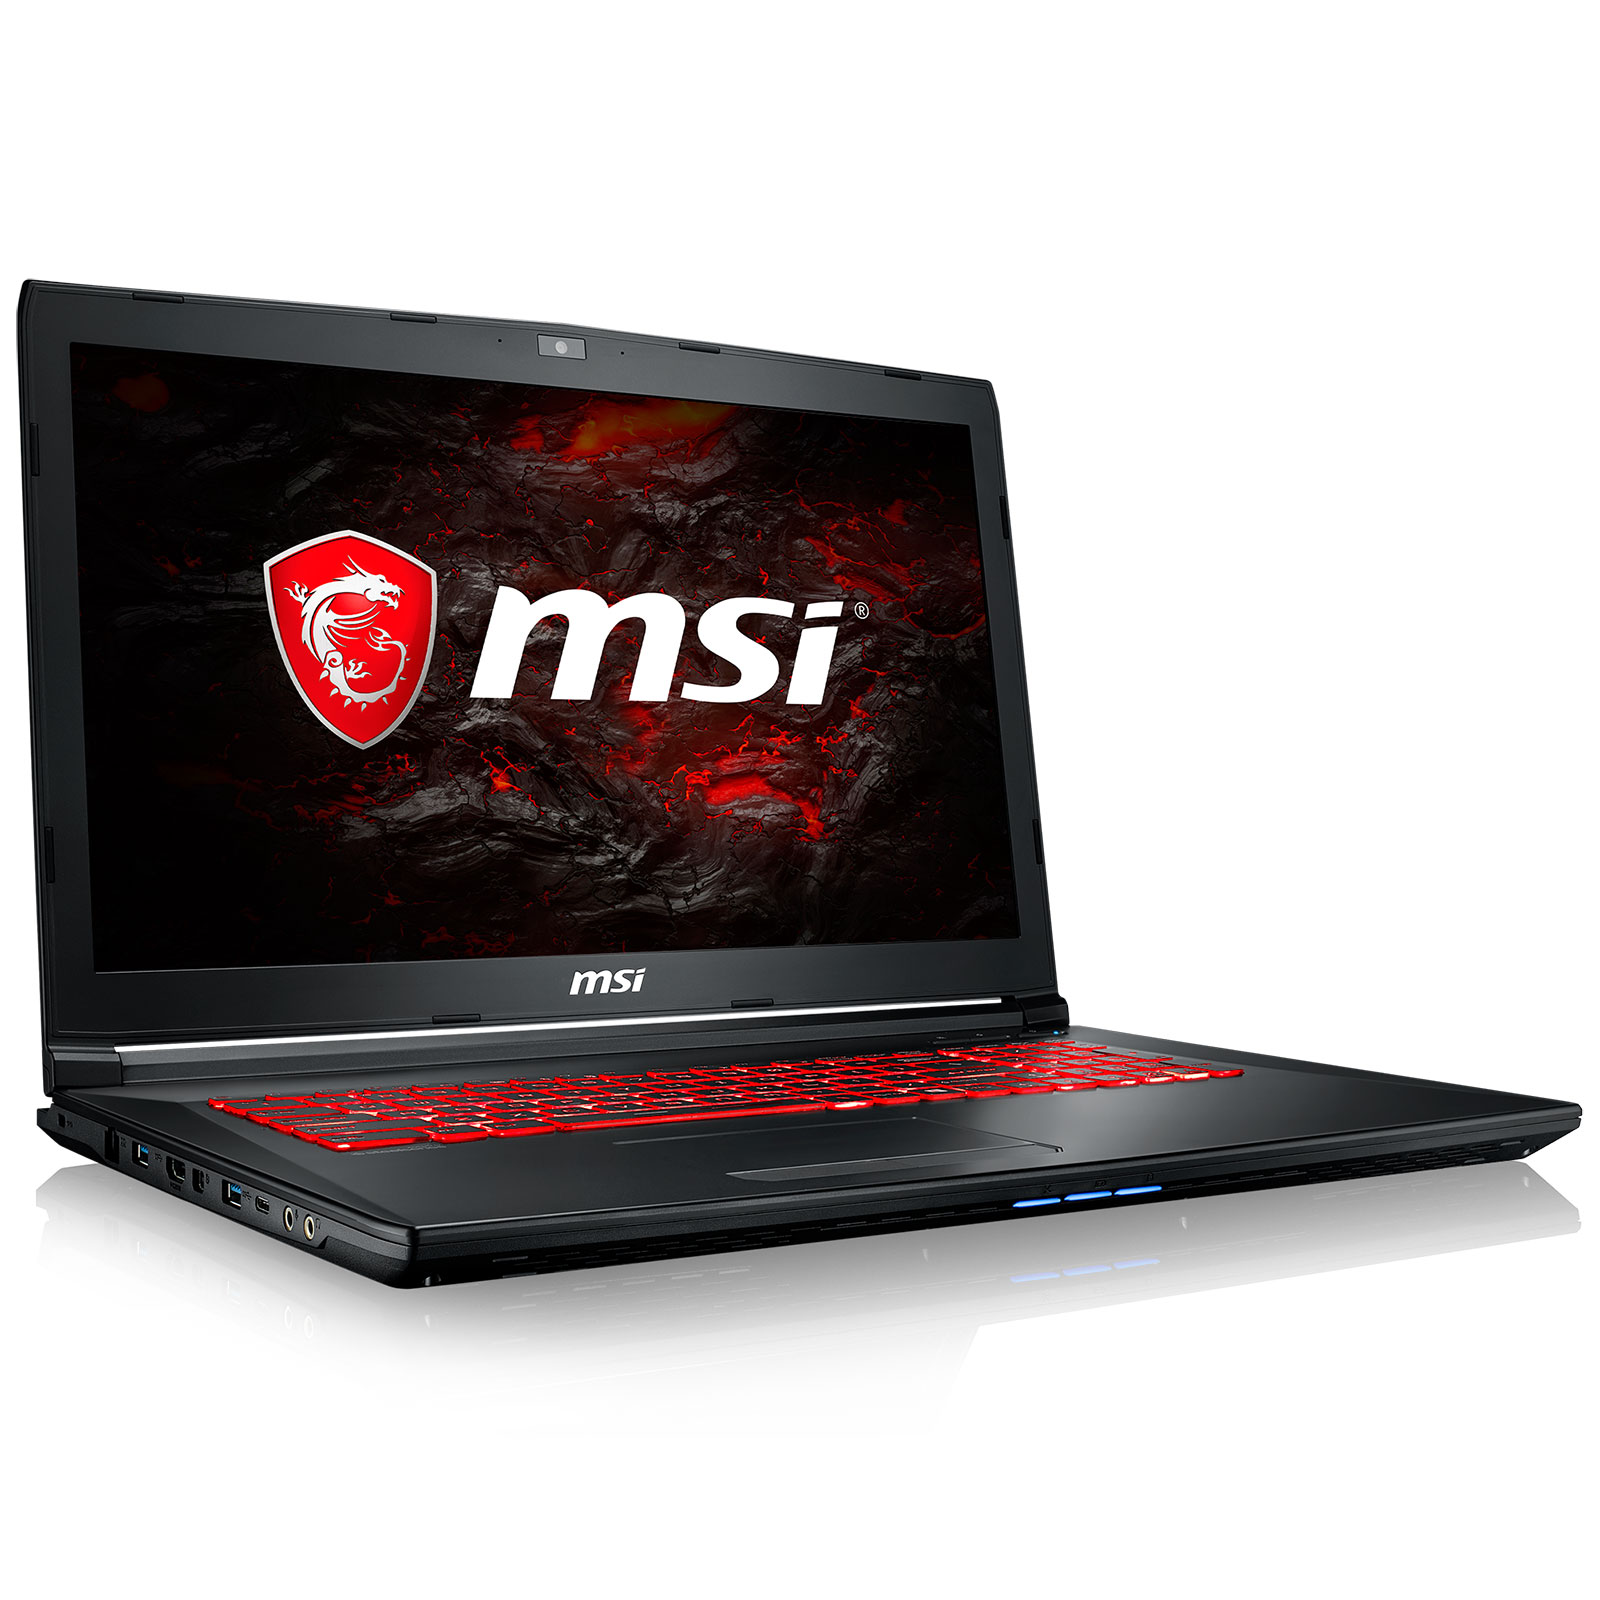 "PC portable MSI GL72M 7RDX-1472XFR Intel Core i5-7300HQ 8 Go 1 To 17.3"" LED Full HD NVIDIA GeForce GTX 1050 2 Go Wi-Fi AC/Bluetooth Webcam FreeDOS (garantie constructeur 2 ans)"